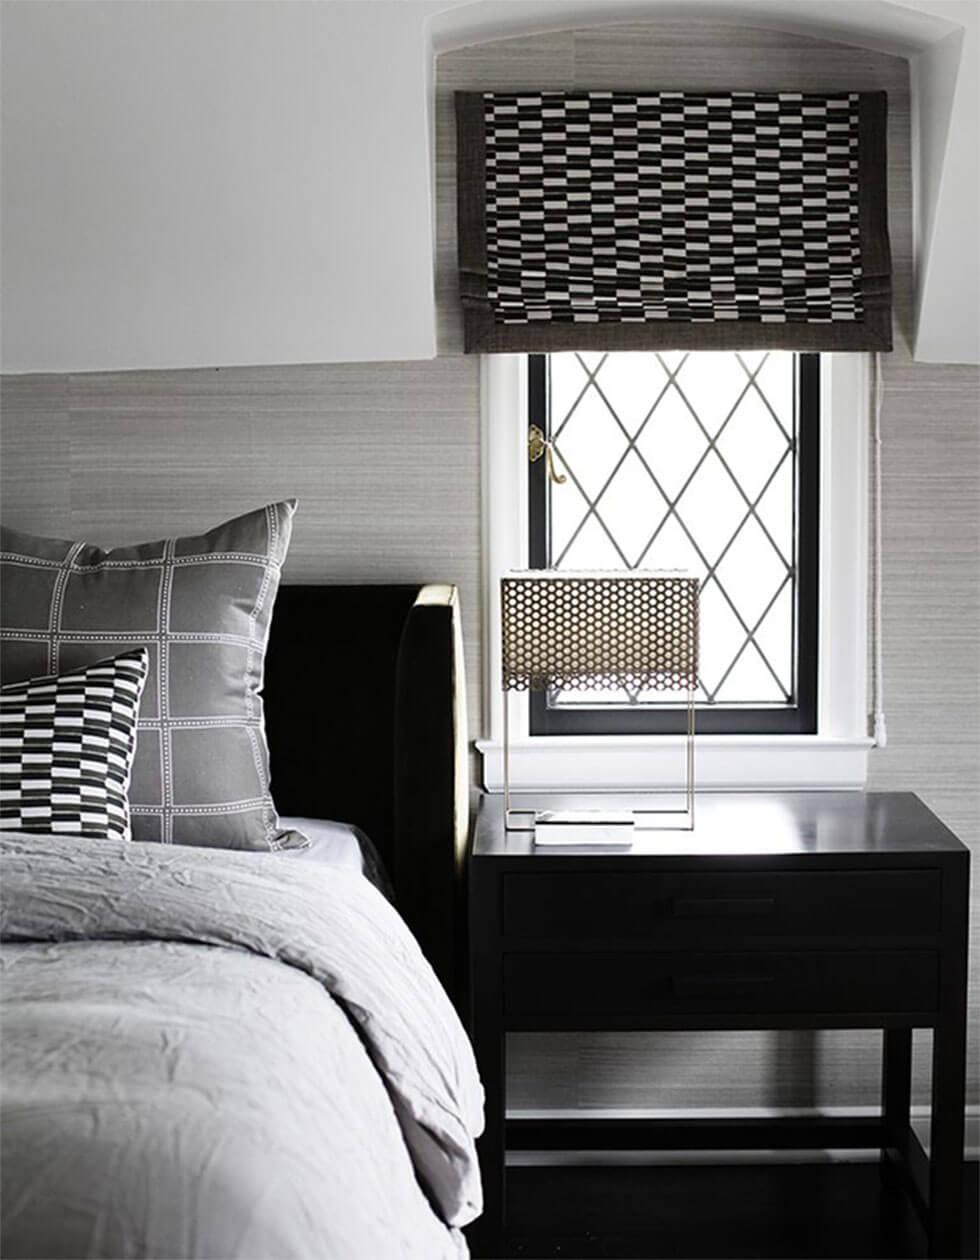 Black and white bedroom with patterned blinds and cushions